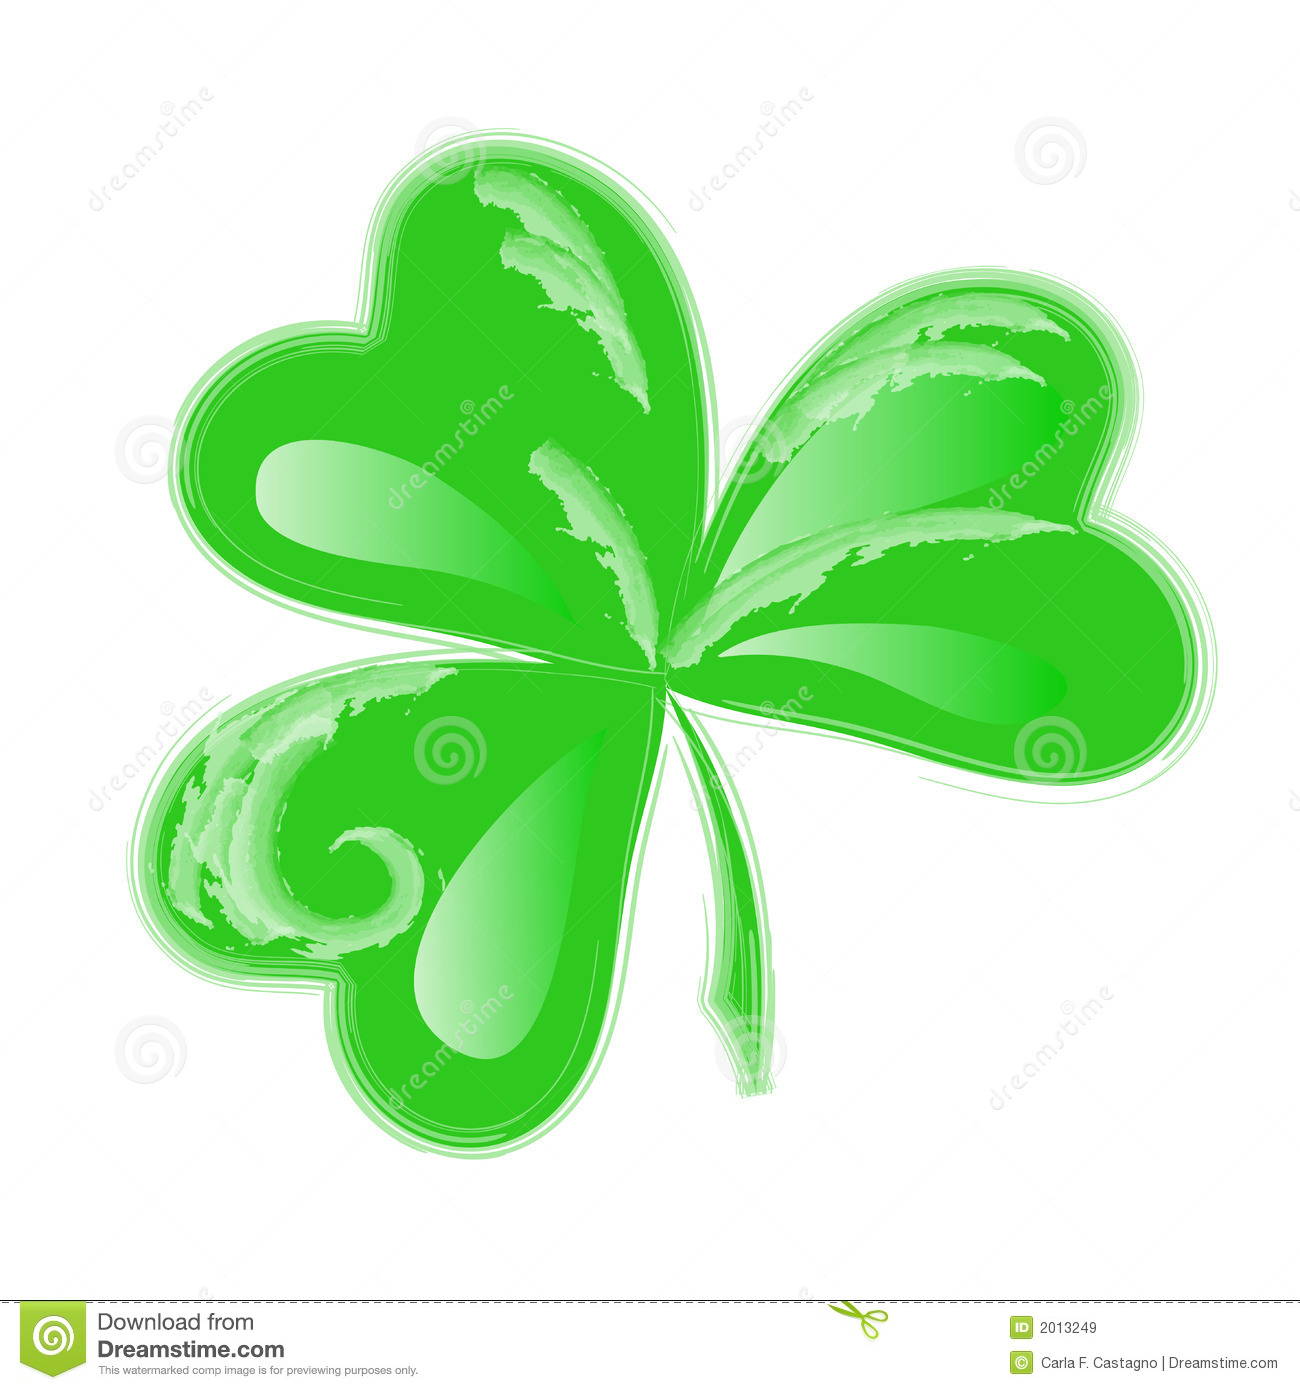 3 Leaf Clover Clipart.